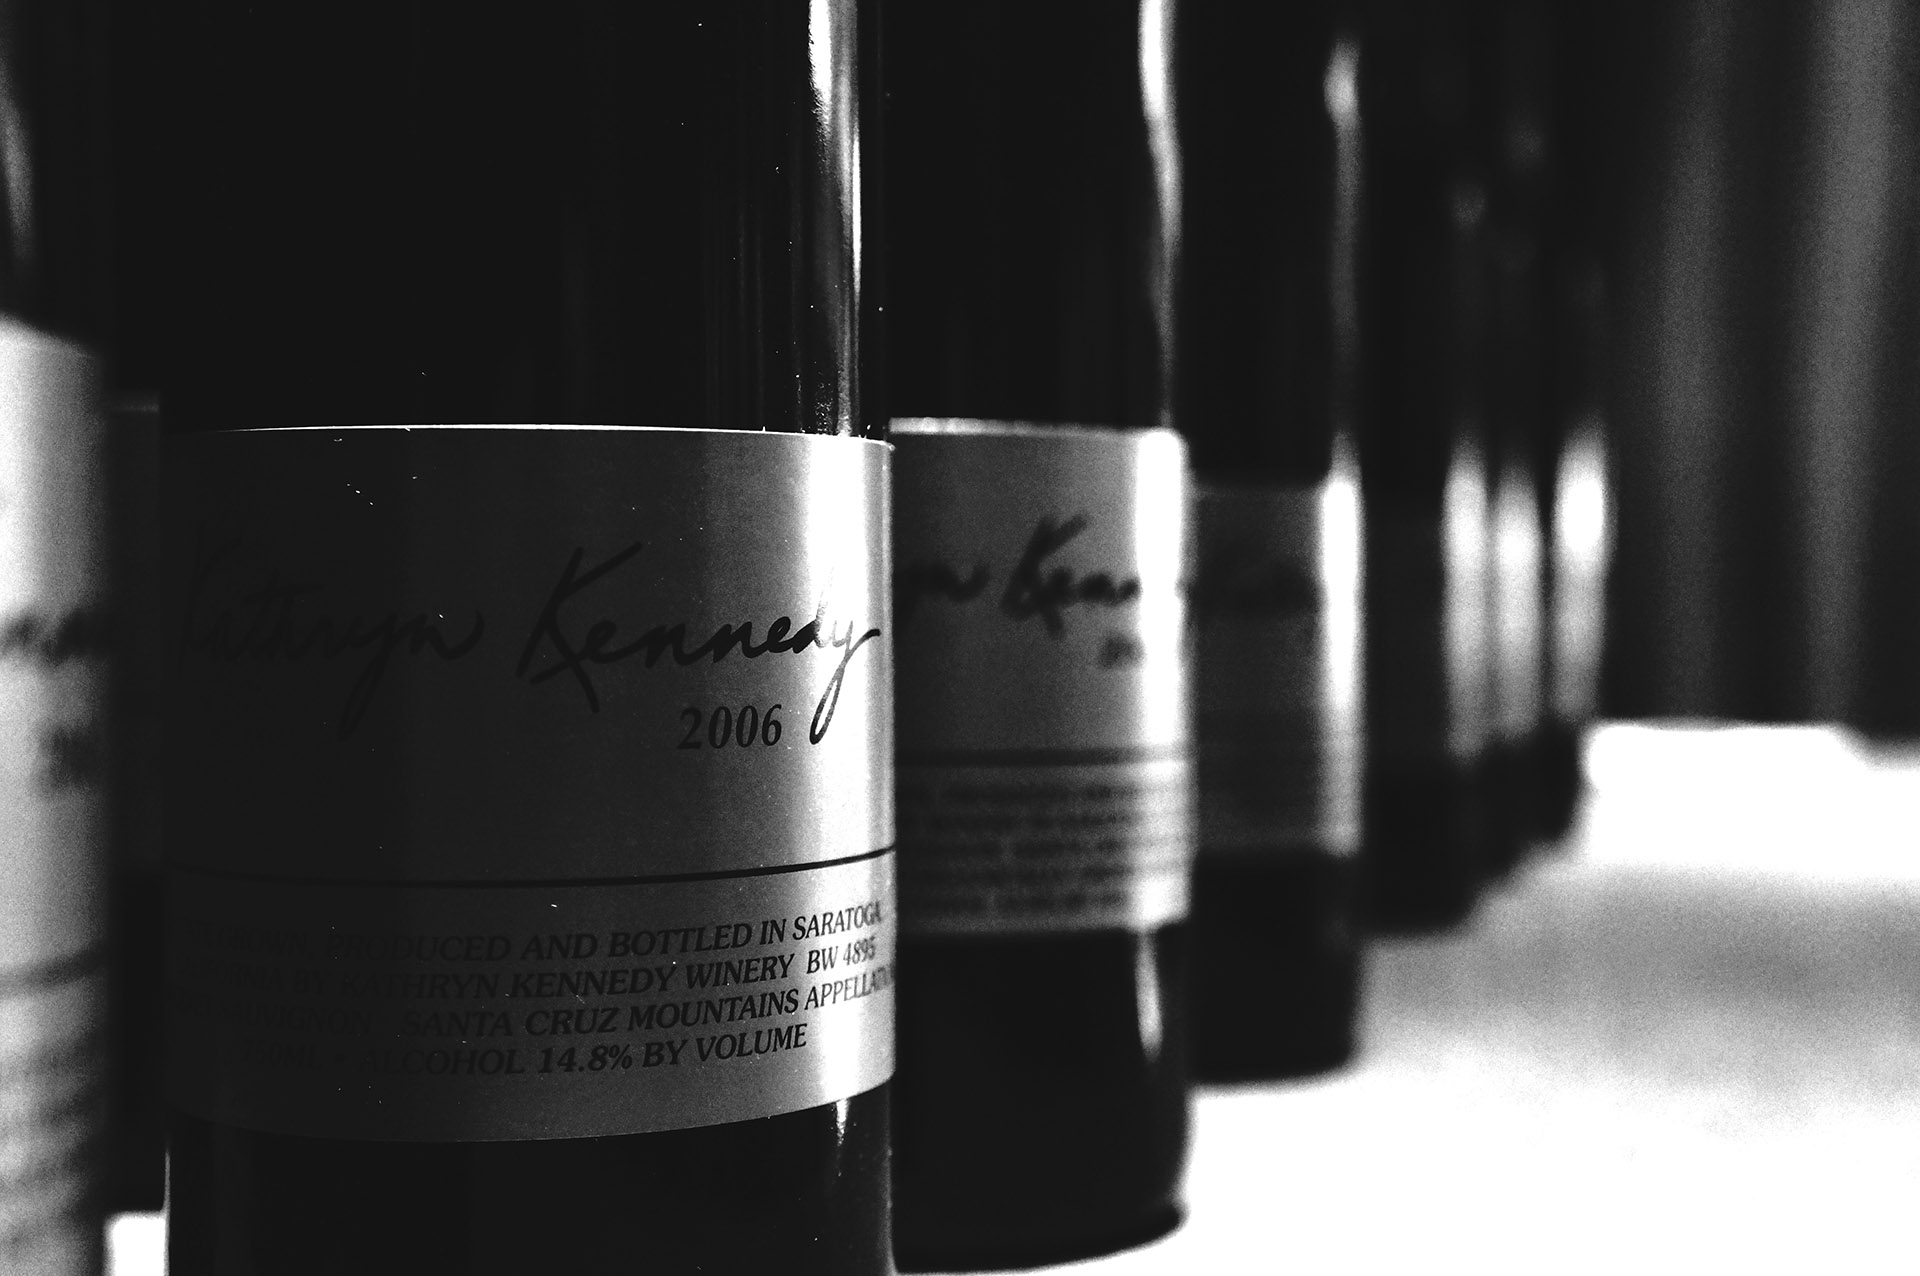 Image of Estate Cabernet at Kathryn Kennedy Winery